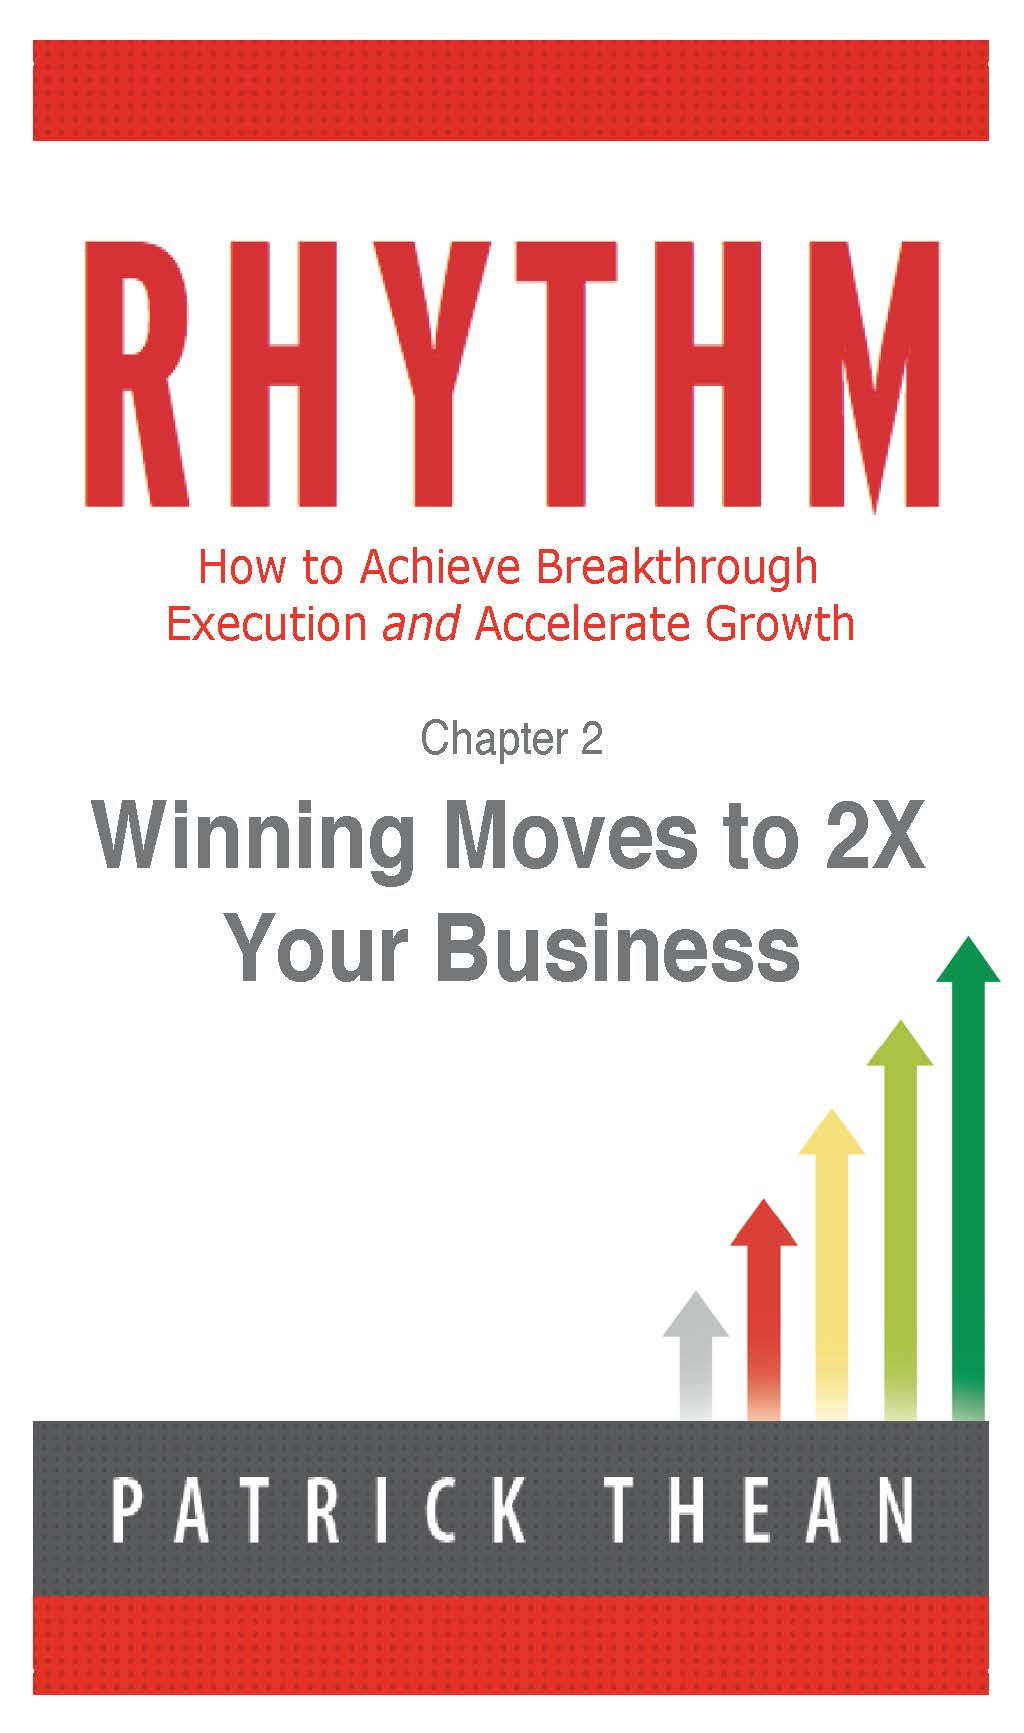 Winning Moves to 2X Your Business